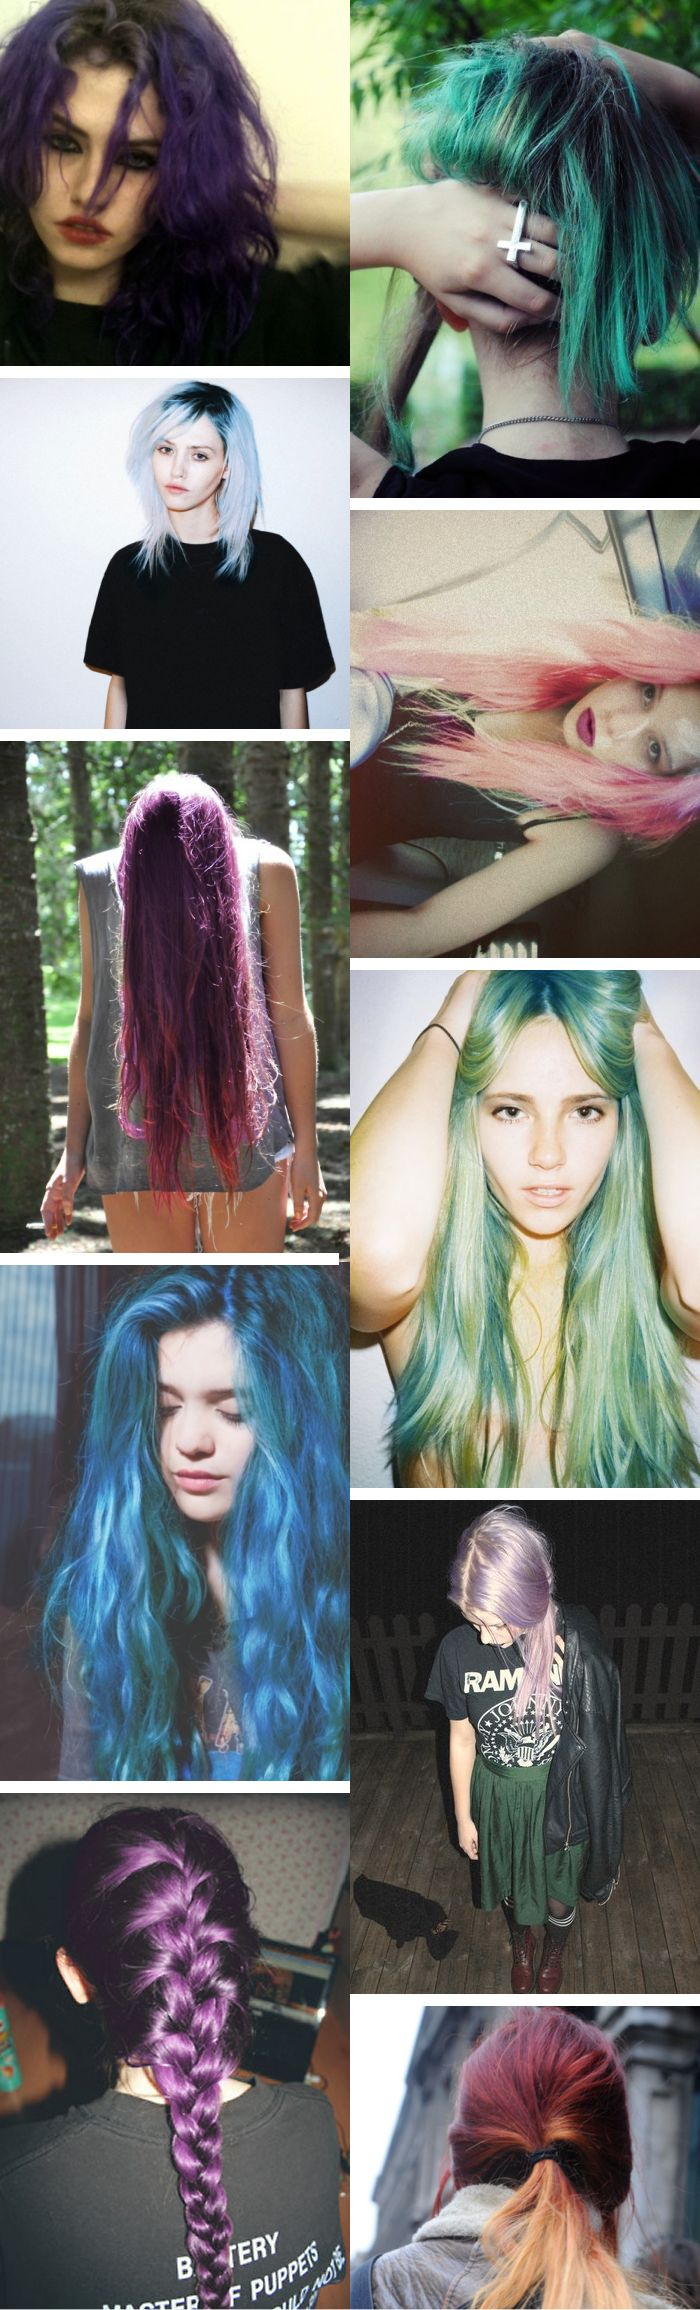 best hair images on pinterest gorgeous hair hairstyle ideas